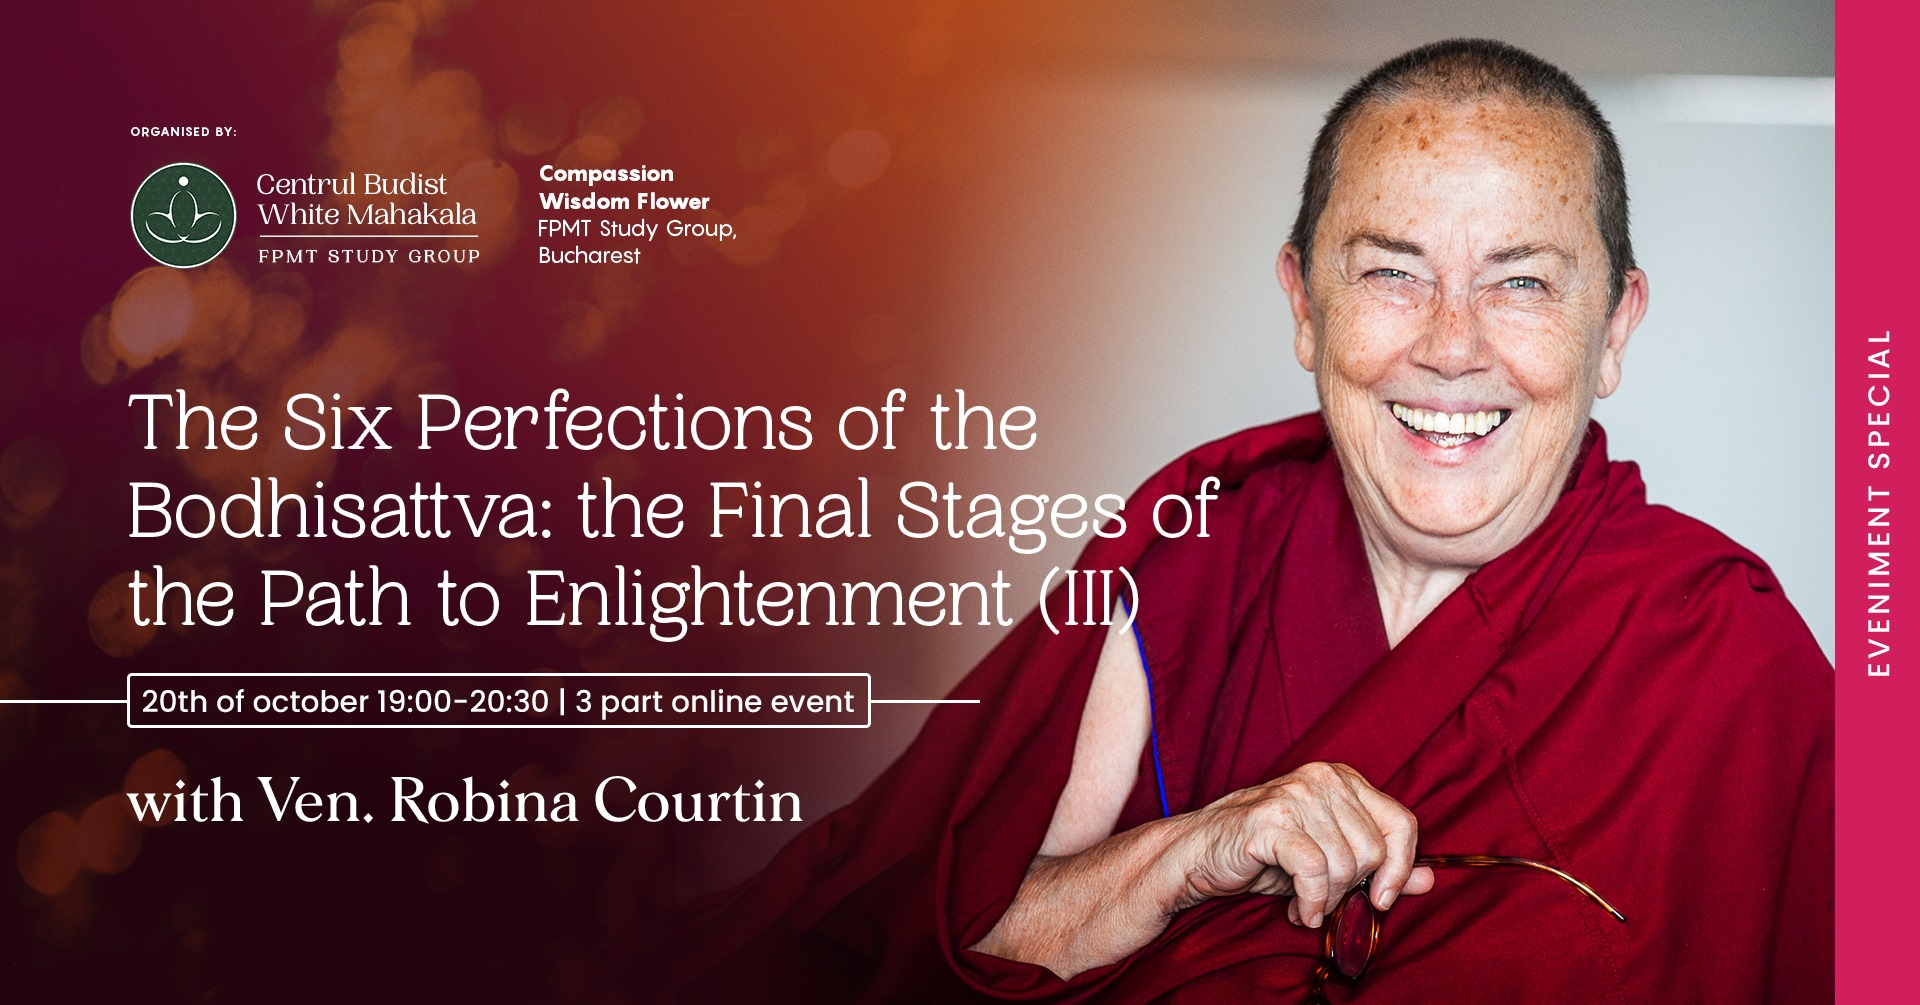 The Six Perfections of the Bodhisattva: the Final Stages of the Path to Enlightenment (III)